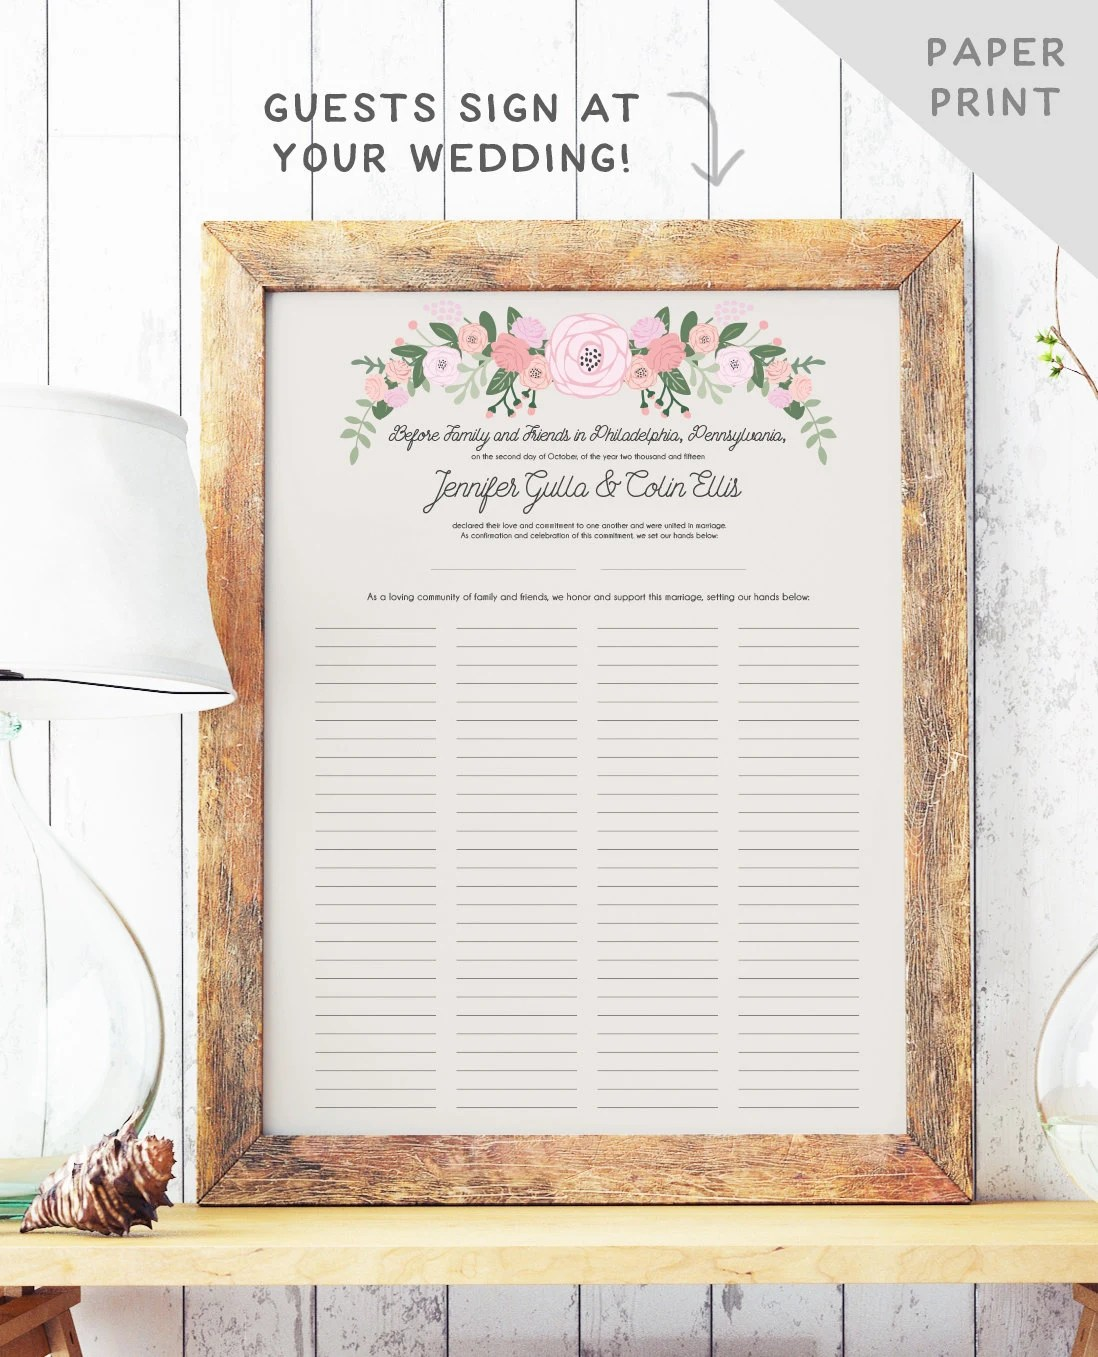 marriage certificate wedding certificate Rustic Quaker Marriage Certificate Wedding Guest Book Alternative Marriage Contract Rustic Guest Book The Bailey Set PAPER